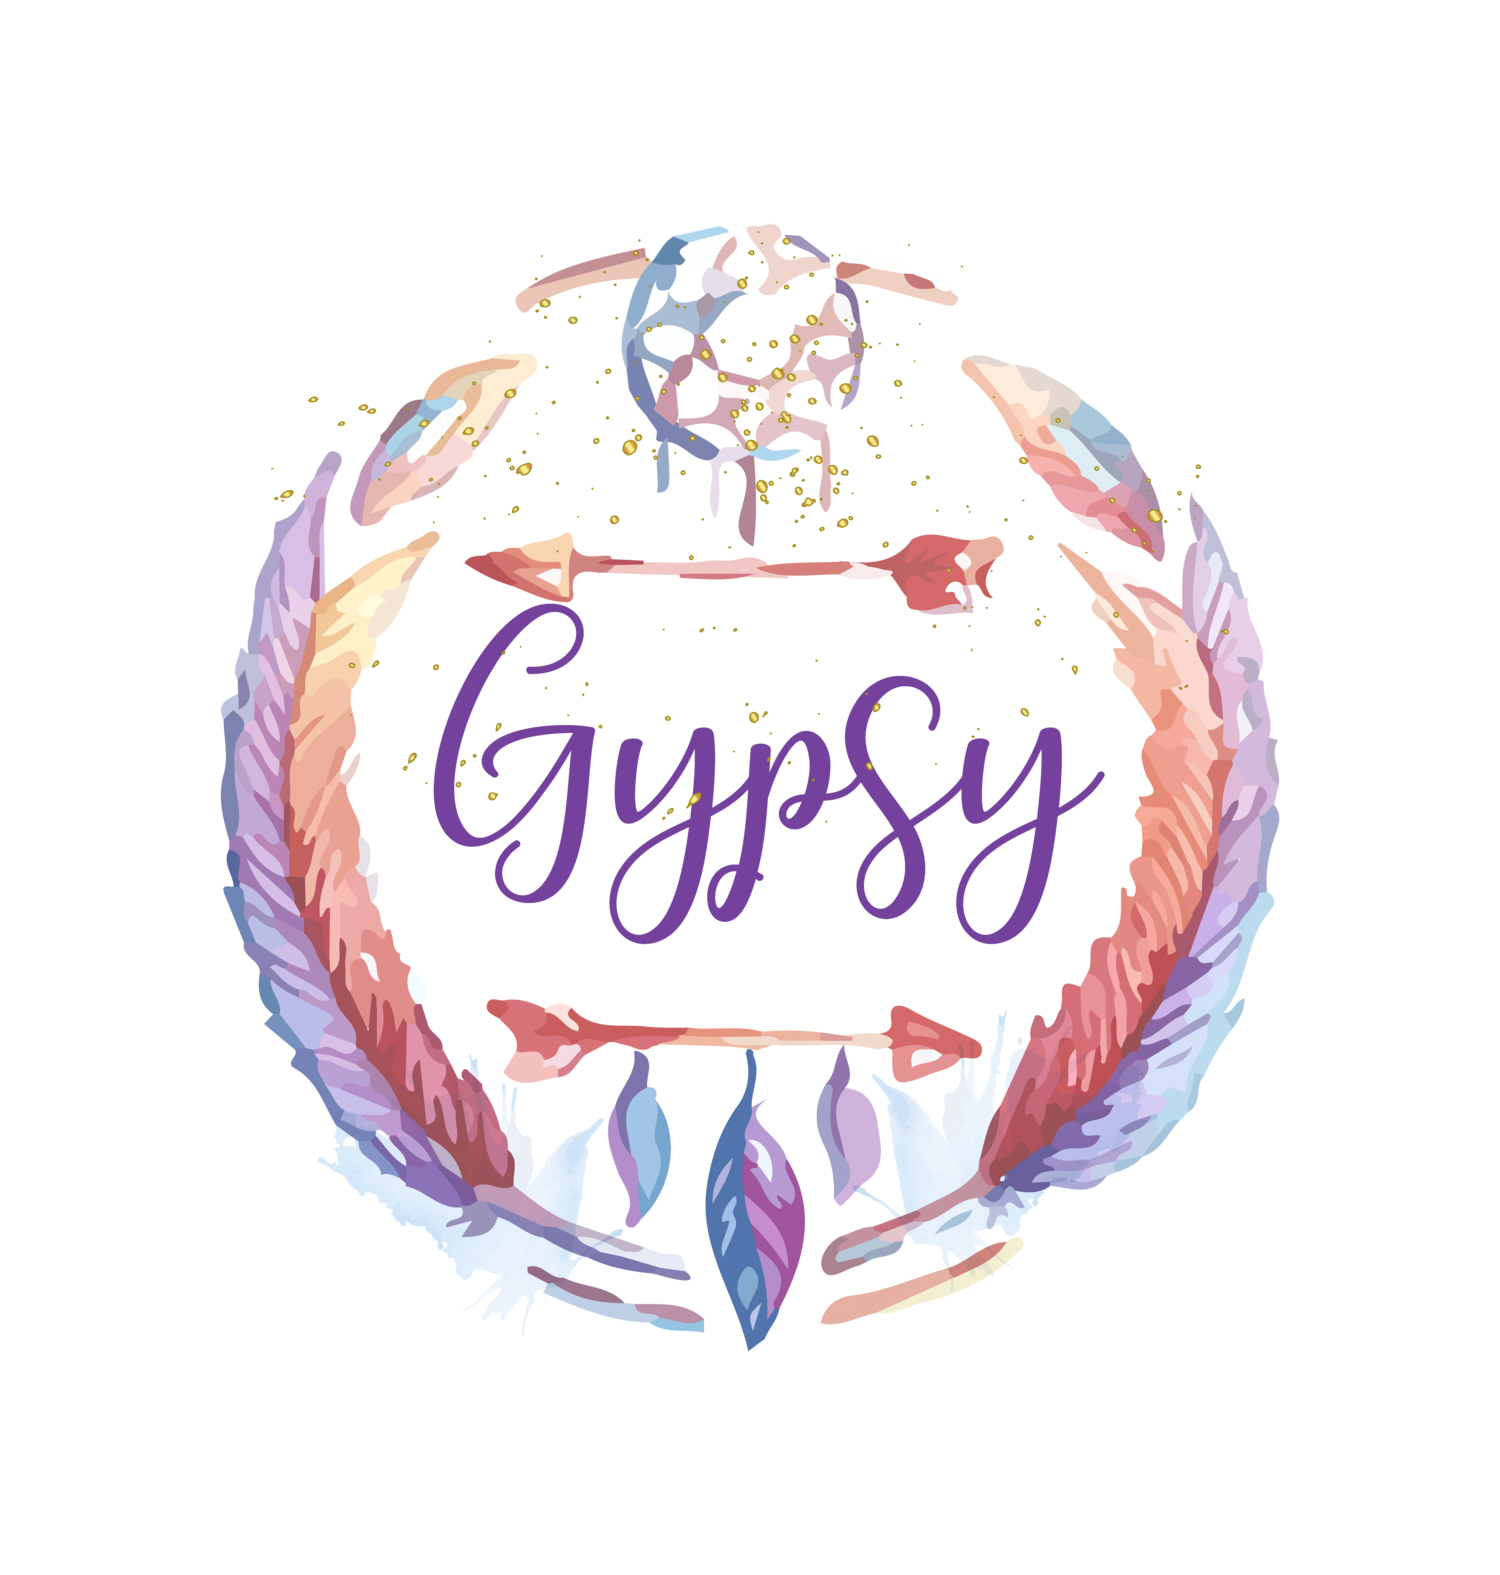 Gypsy of Chicago